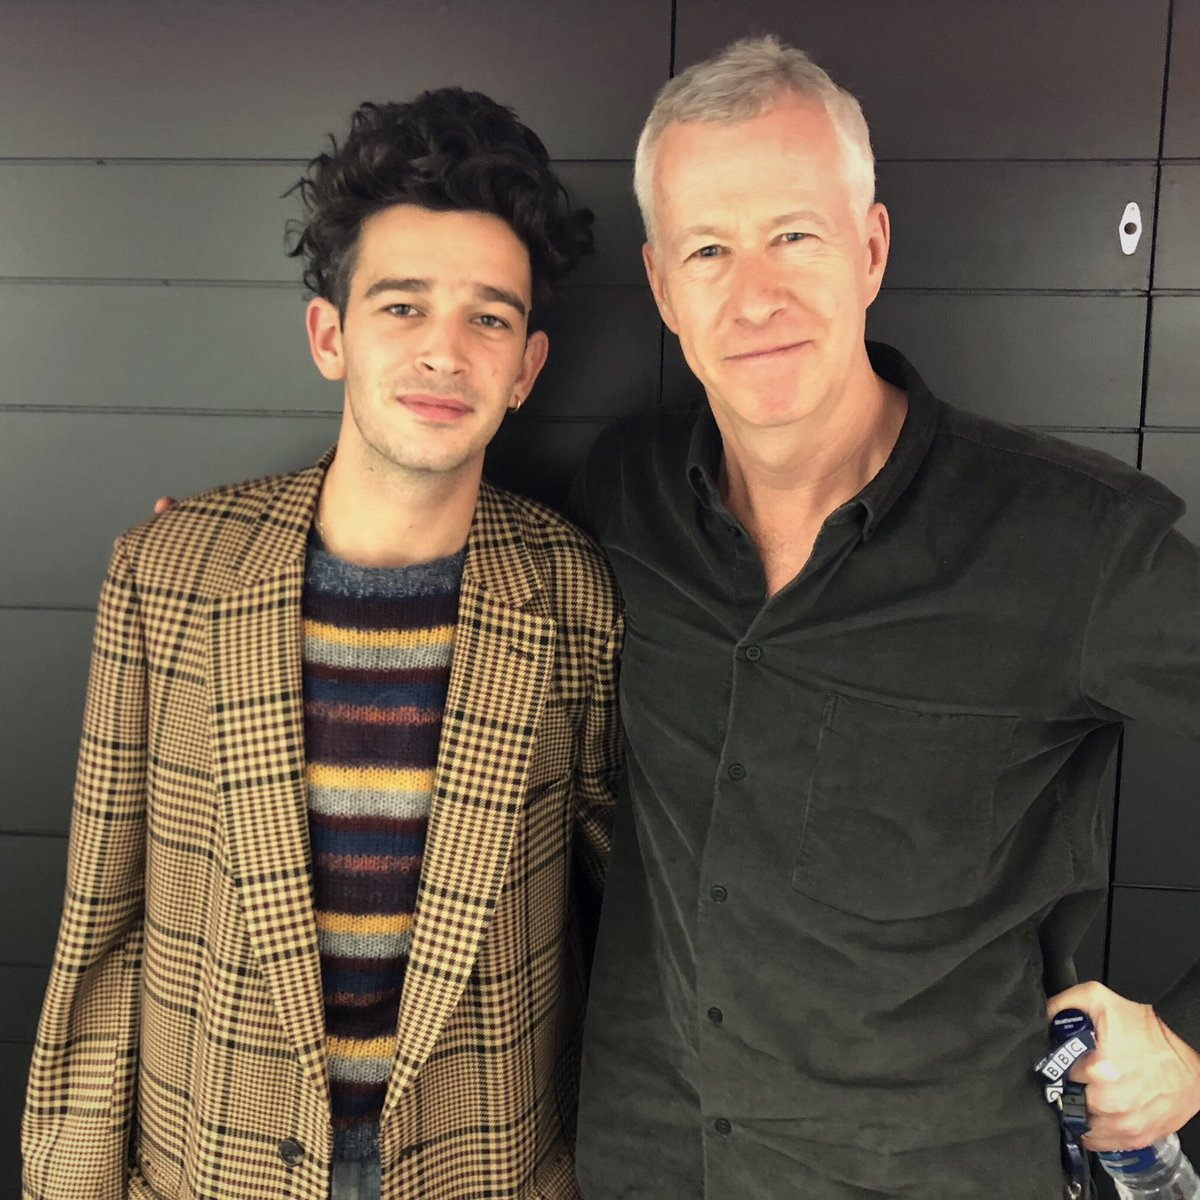 Wonderfully candid interview with @Truman_Black of @the1975. We talked millennnial angst in a virtual world, drugs, rehab, equine therapy & cathartic power of music. Listen to @BBCFrontRow @BBCRadio4 7.15pm & @bbcsounds